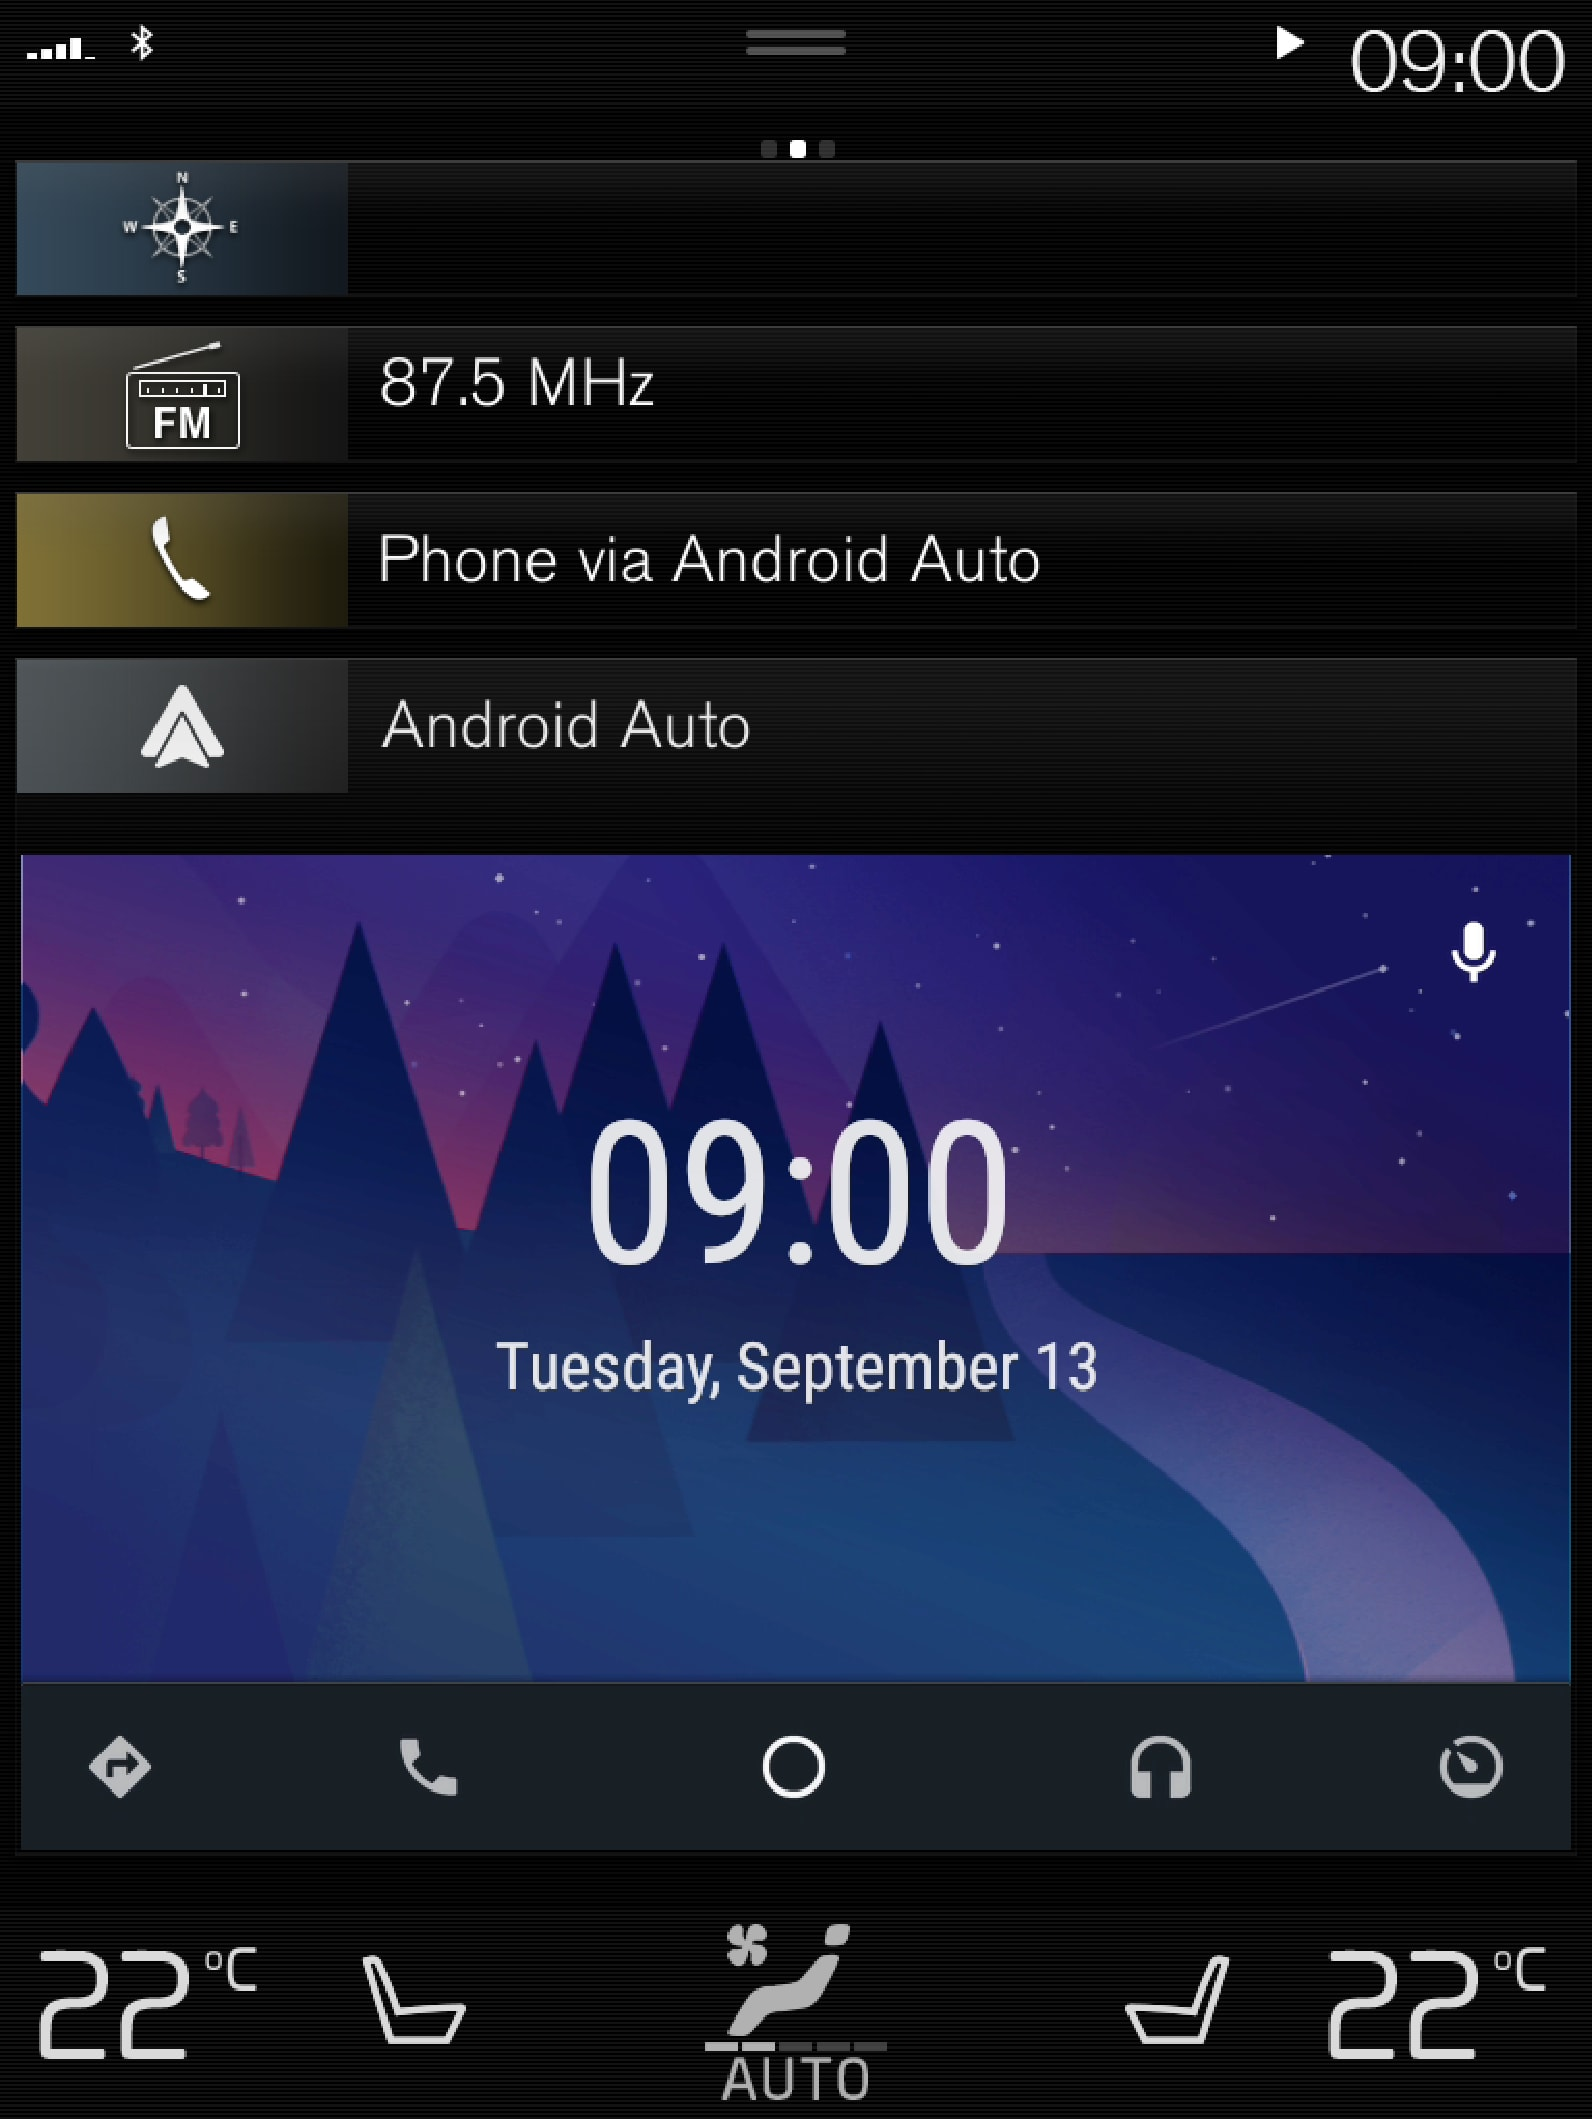 16w46 - P5 - Support site - Android Auto Clock View